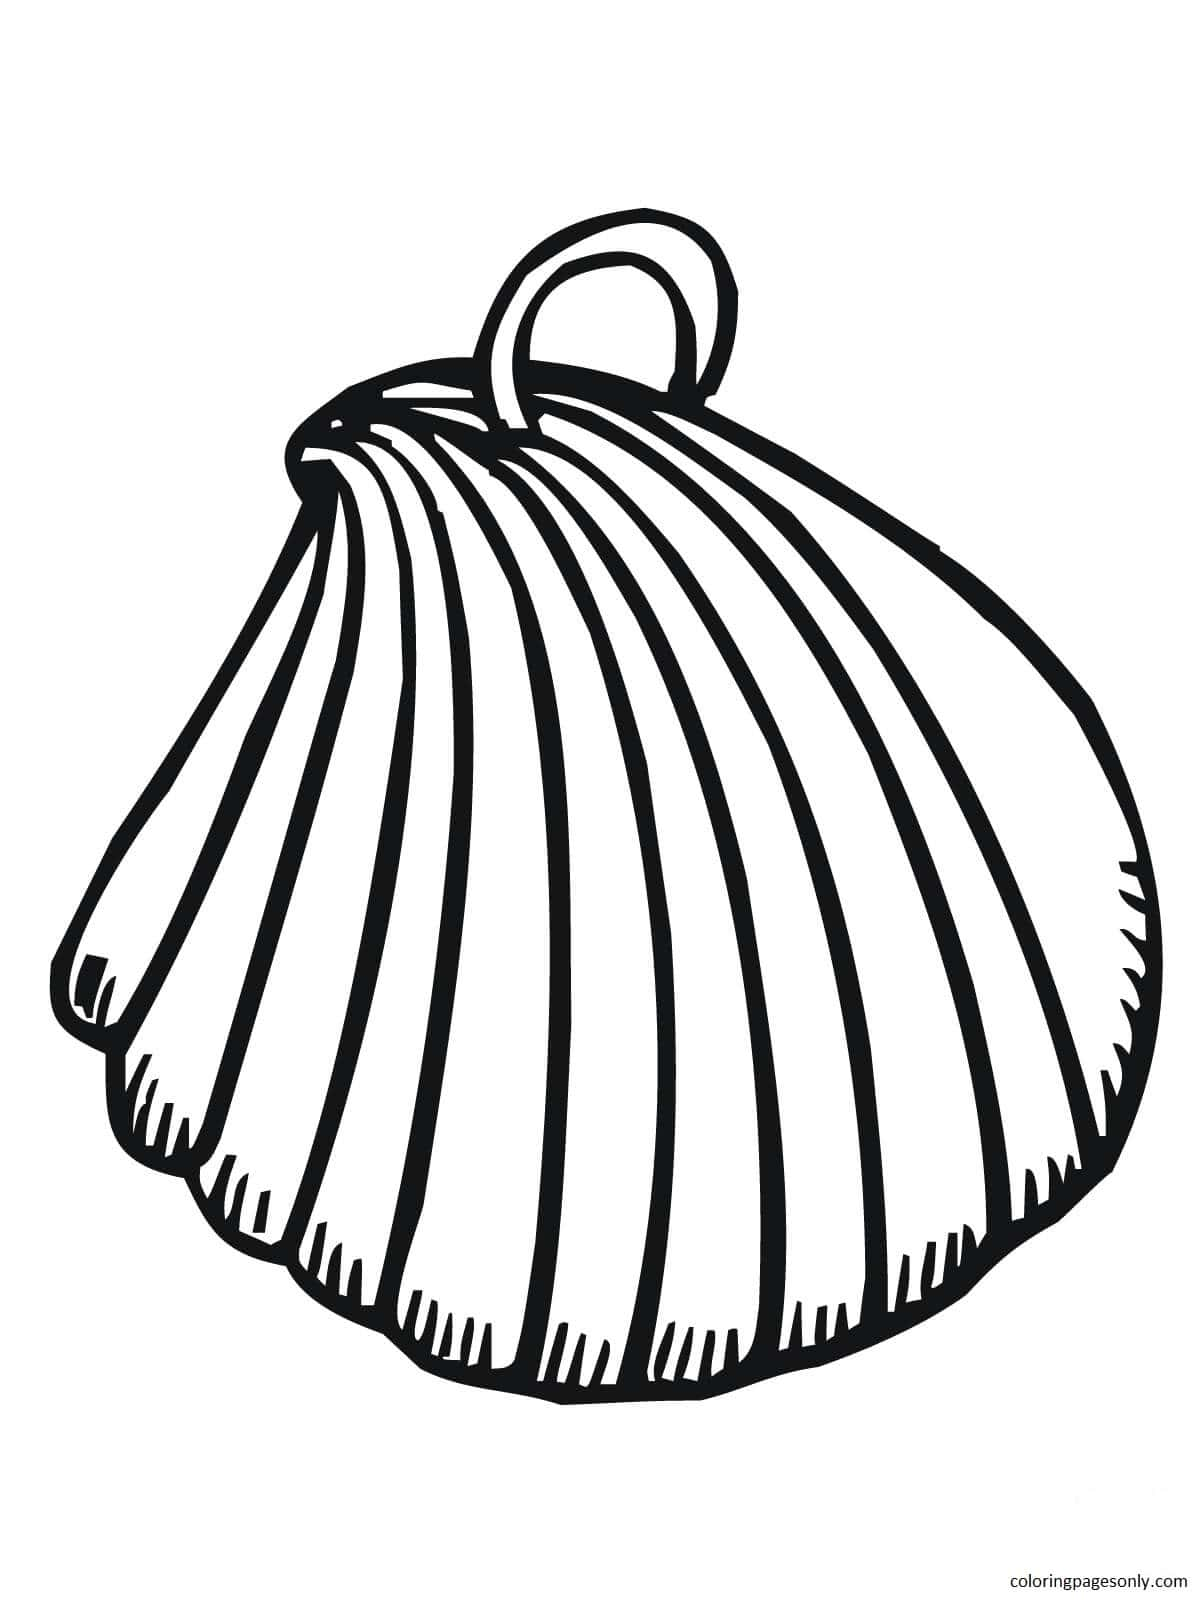 Clam Shell Earring Coloring Page